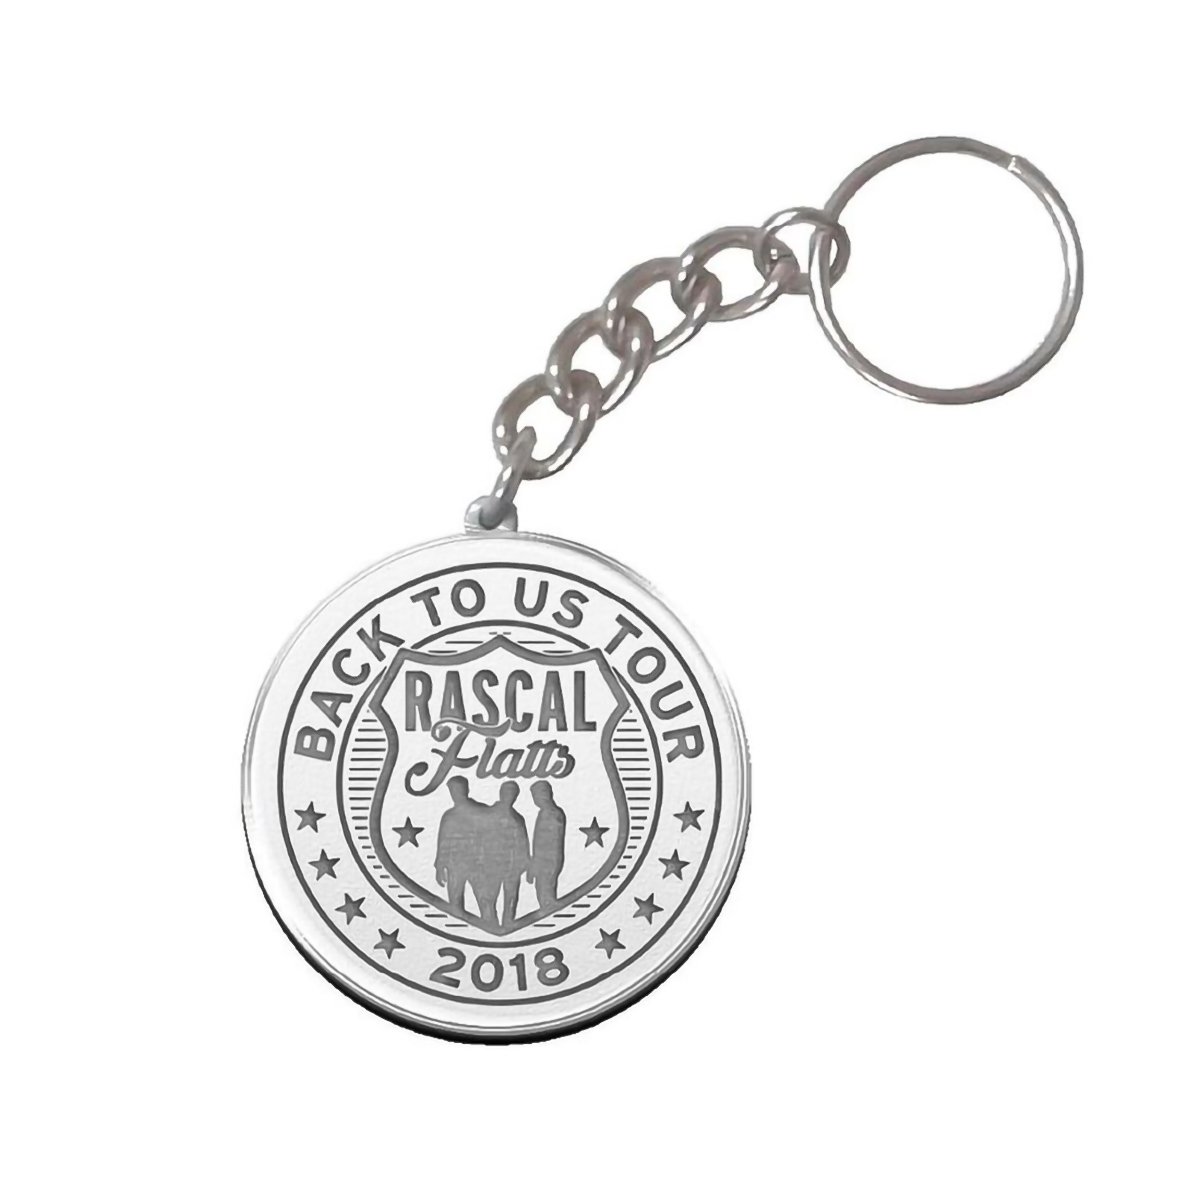 Back to Us Tour 2018 Metal Keychain